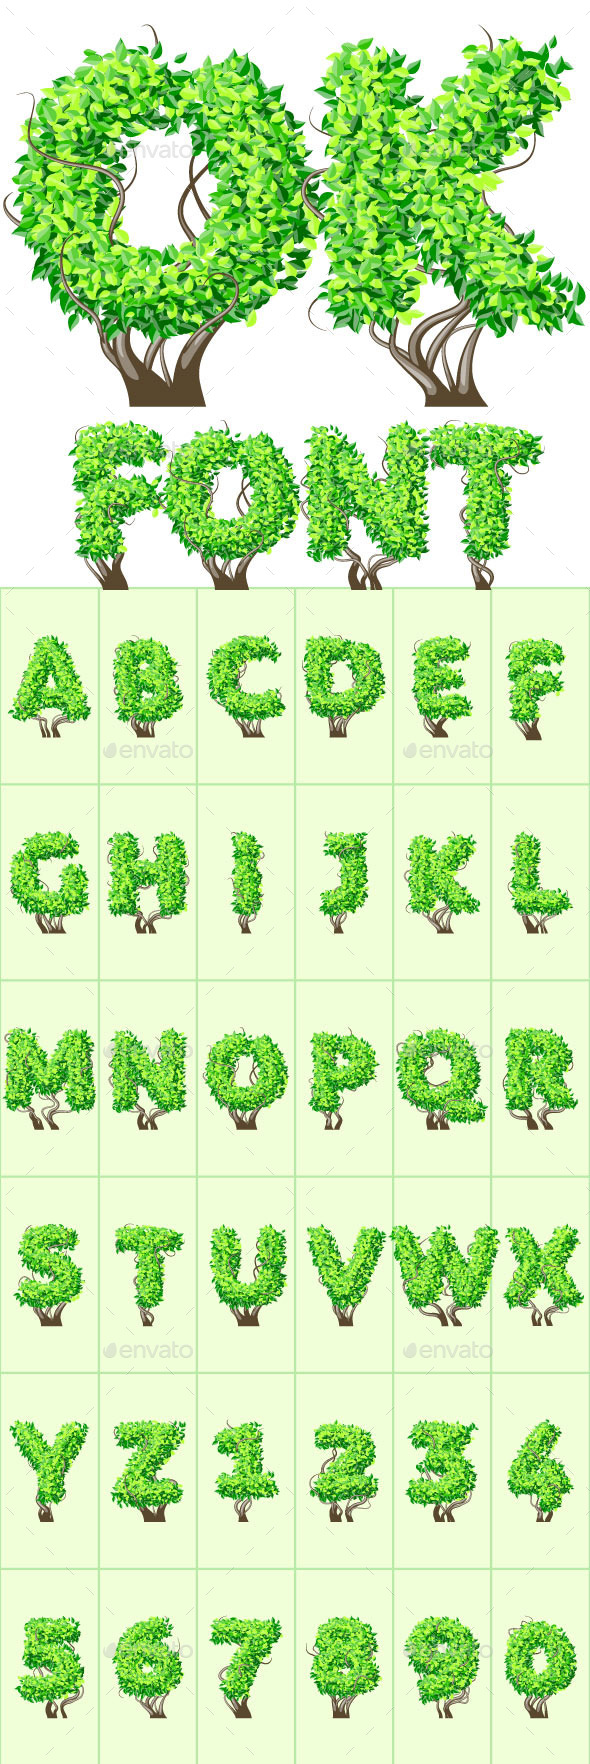 GraphicRiver Detailed Tree Aalphabet 10073963